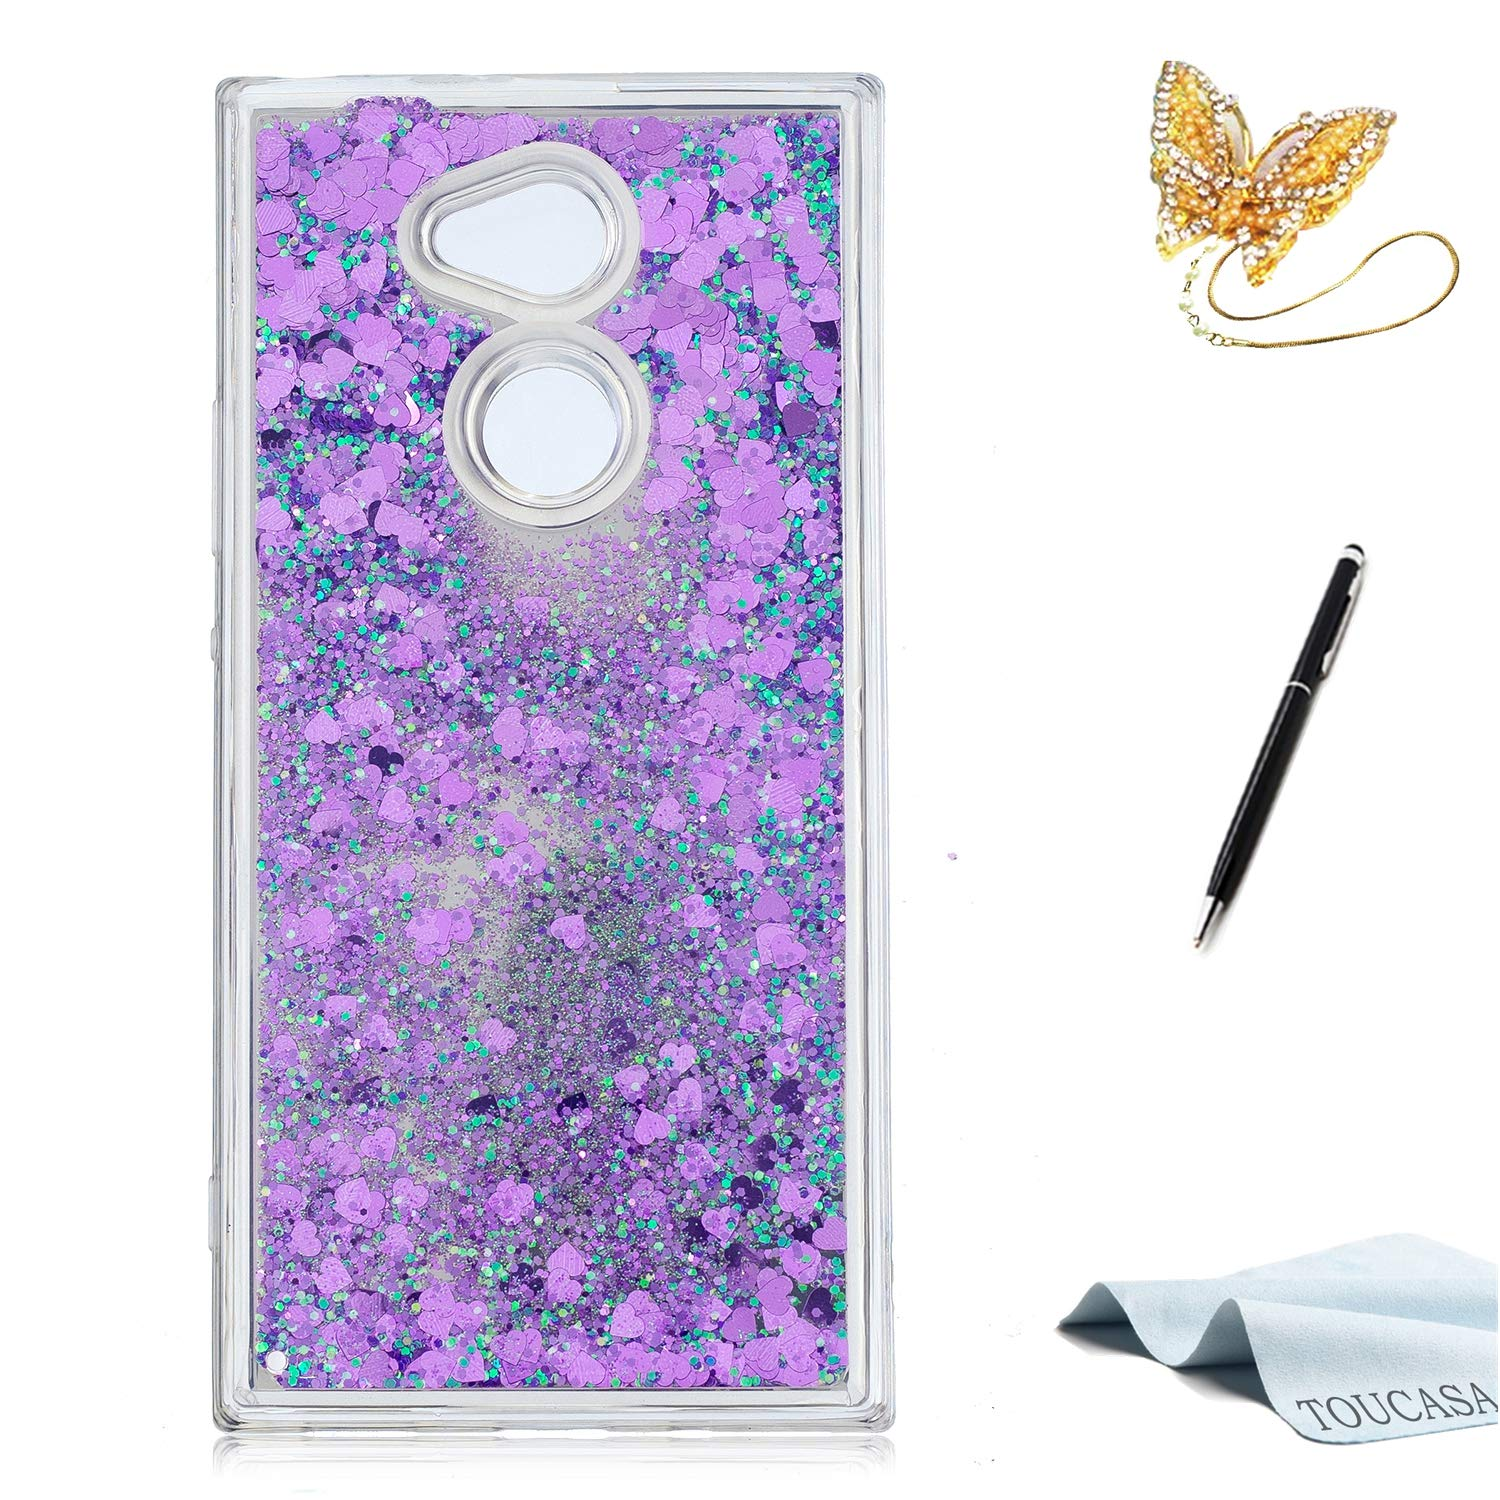 Coque Sony Xperia XA2, Housse Sony Xperia XA2, TOUCASA Anti Choc Silicone Coque, Bling Mince Souple Premium Hybrid Crystal Clear Flex Soft Gel Cover Skin Extra Slim Cristal Clair Gel TPU Neuf Style Brillant Bling Glitter Sparkle Pailletee Silicone Caoutcho